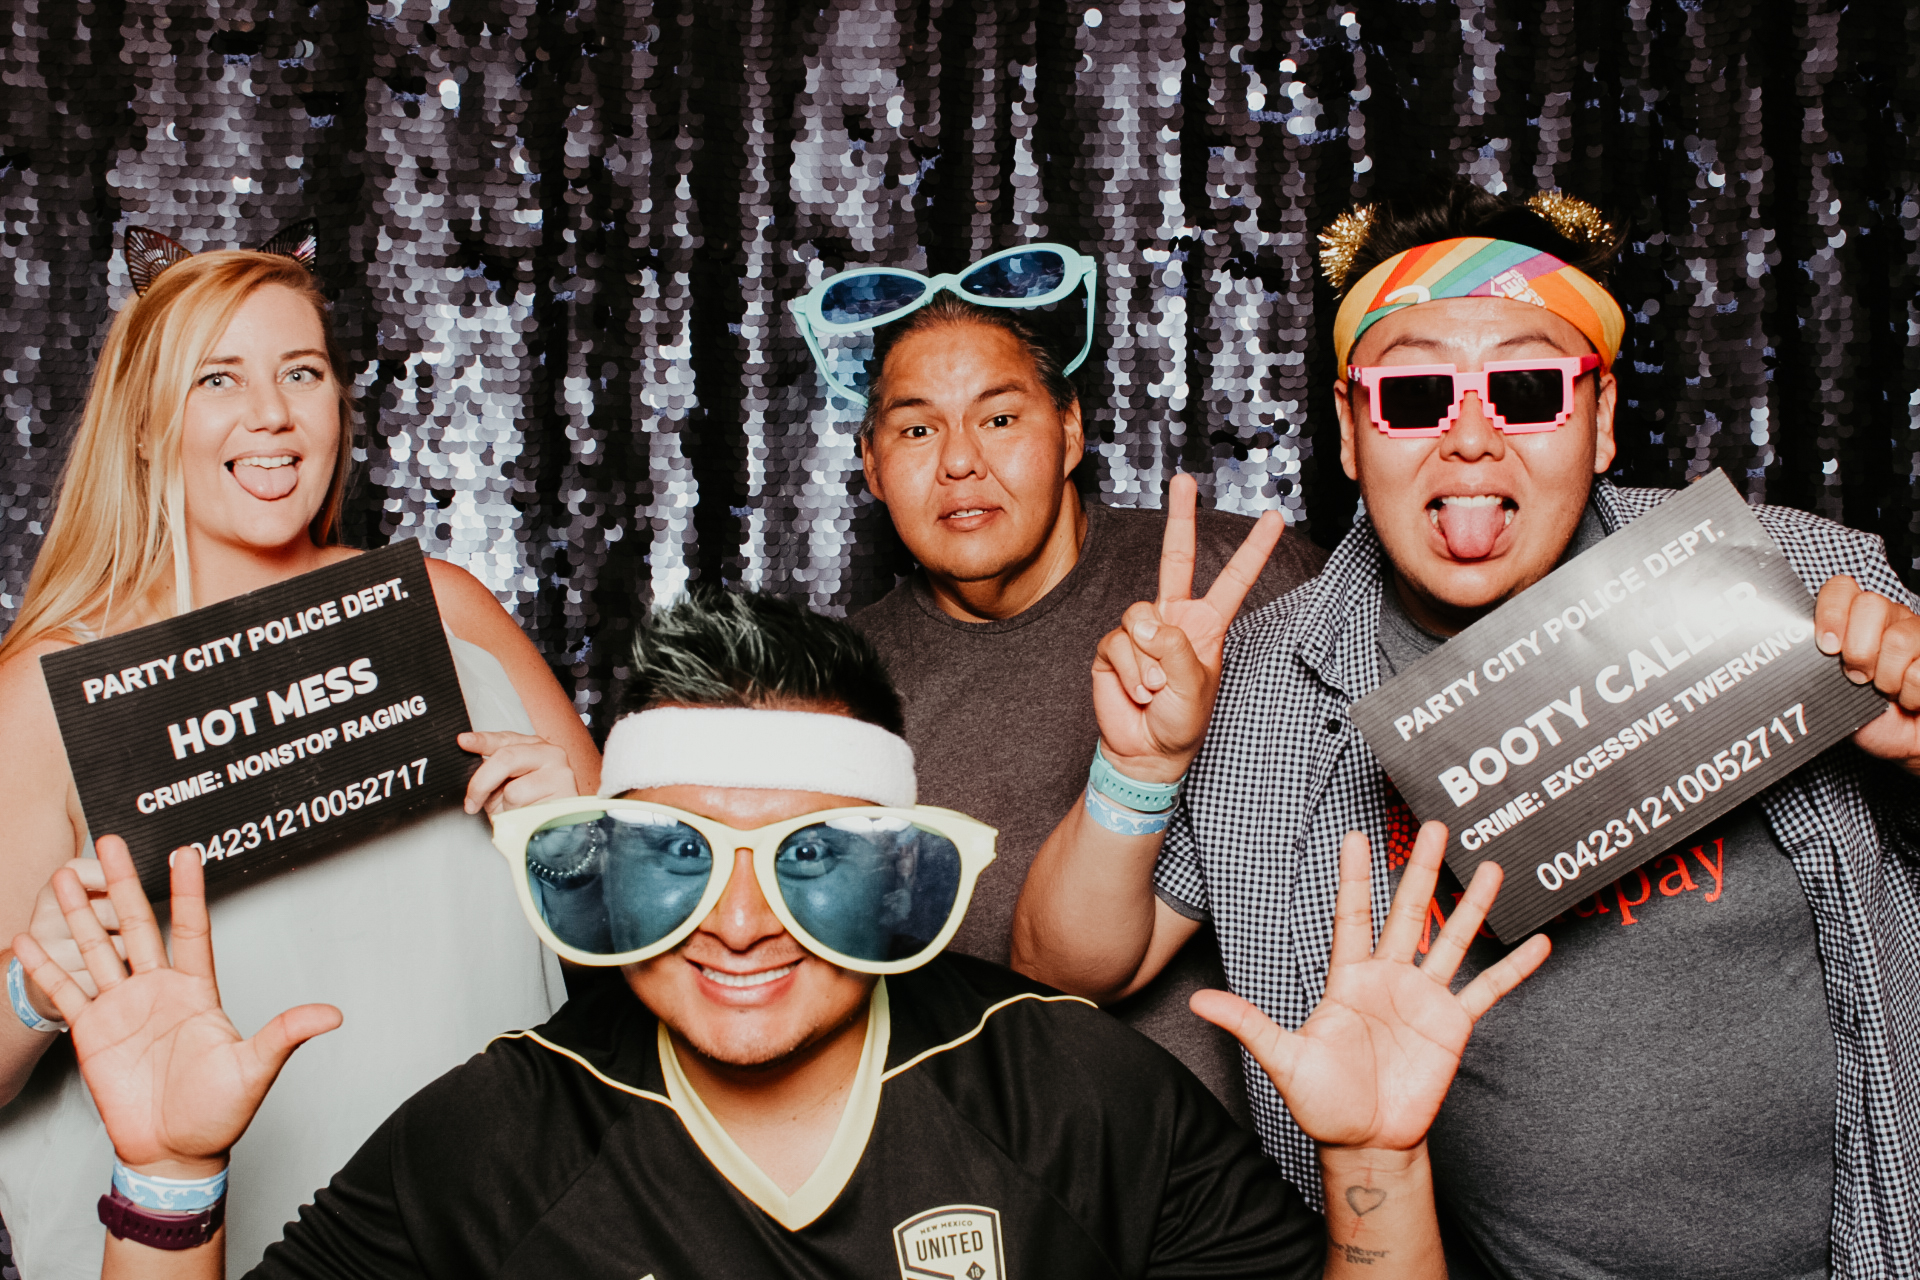 worldpay-photobooth-durango-12.jpg